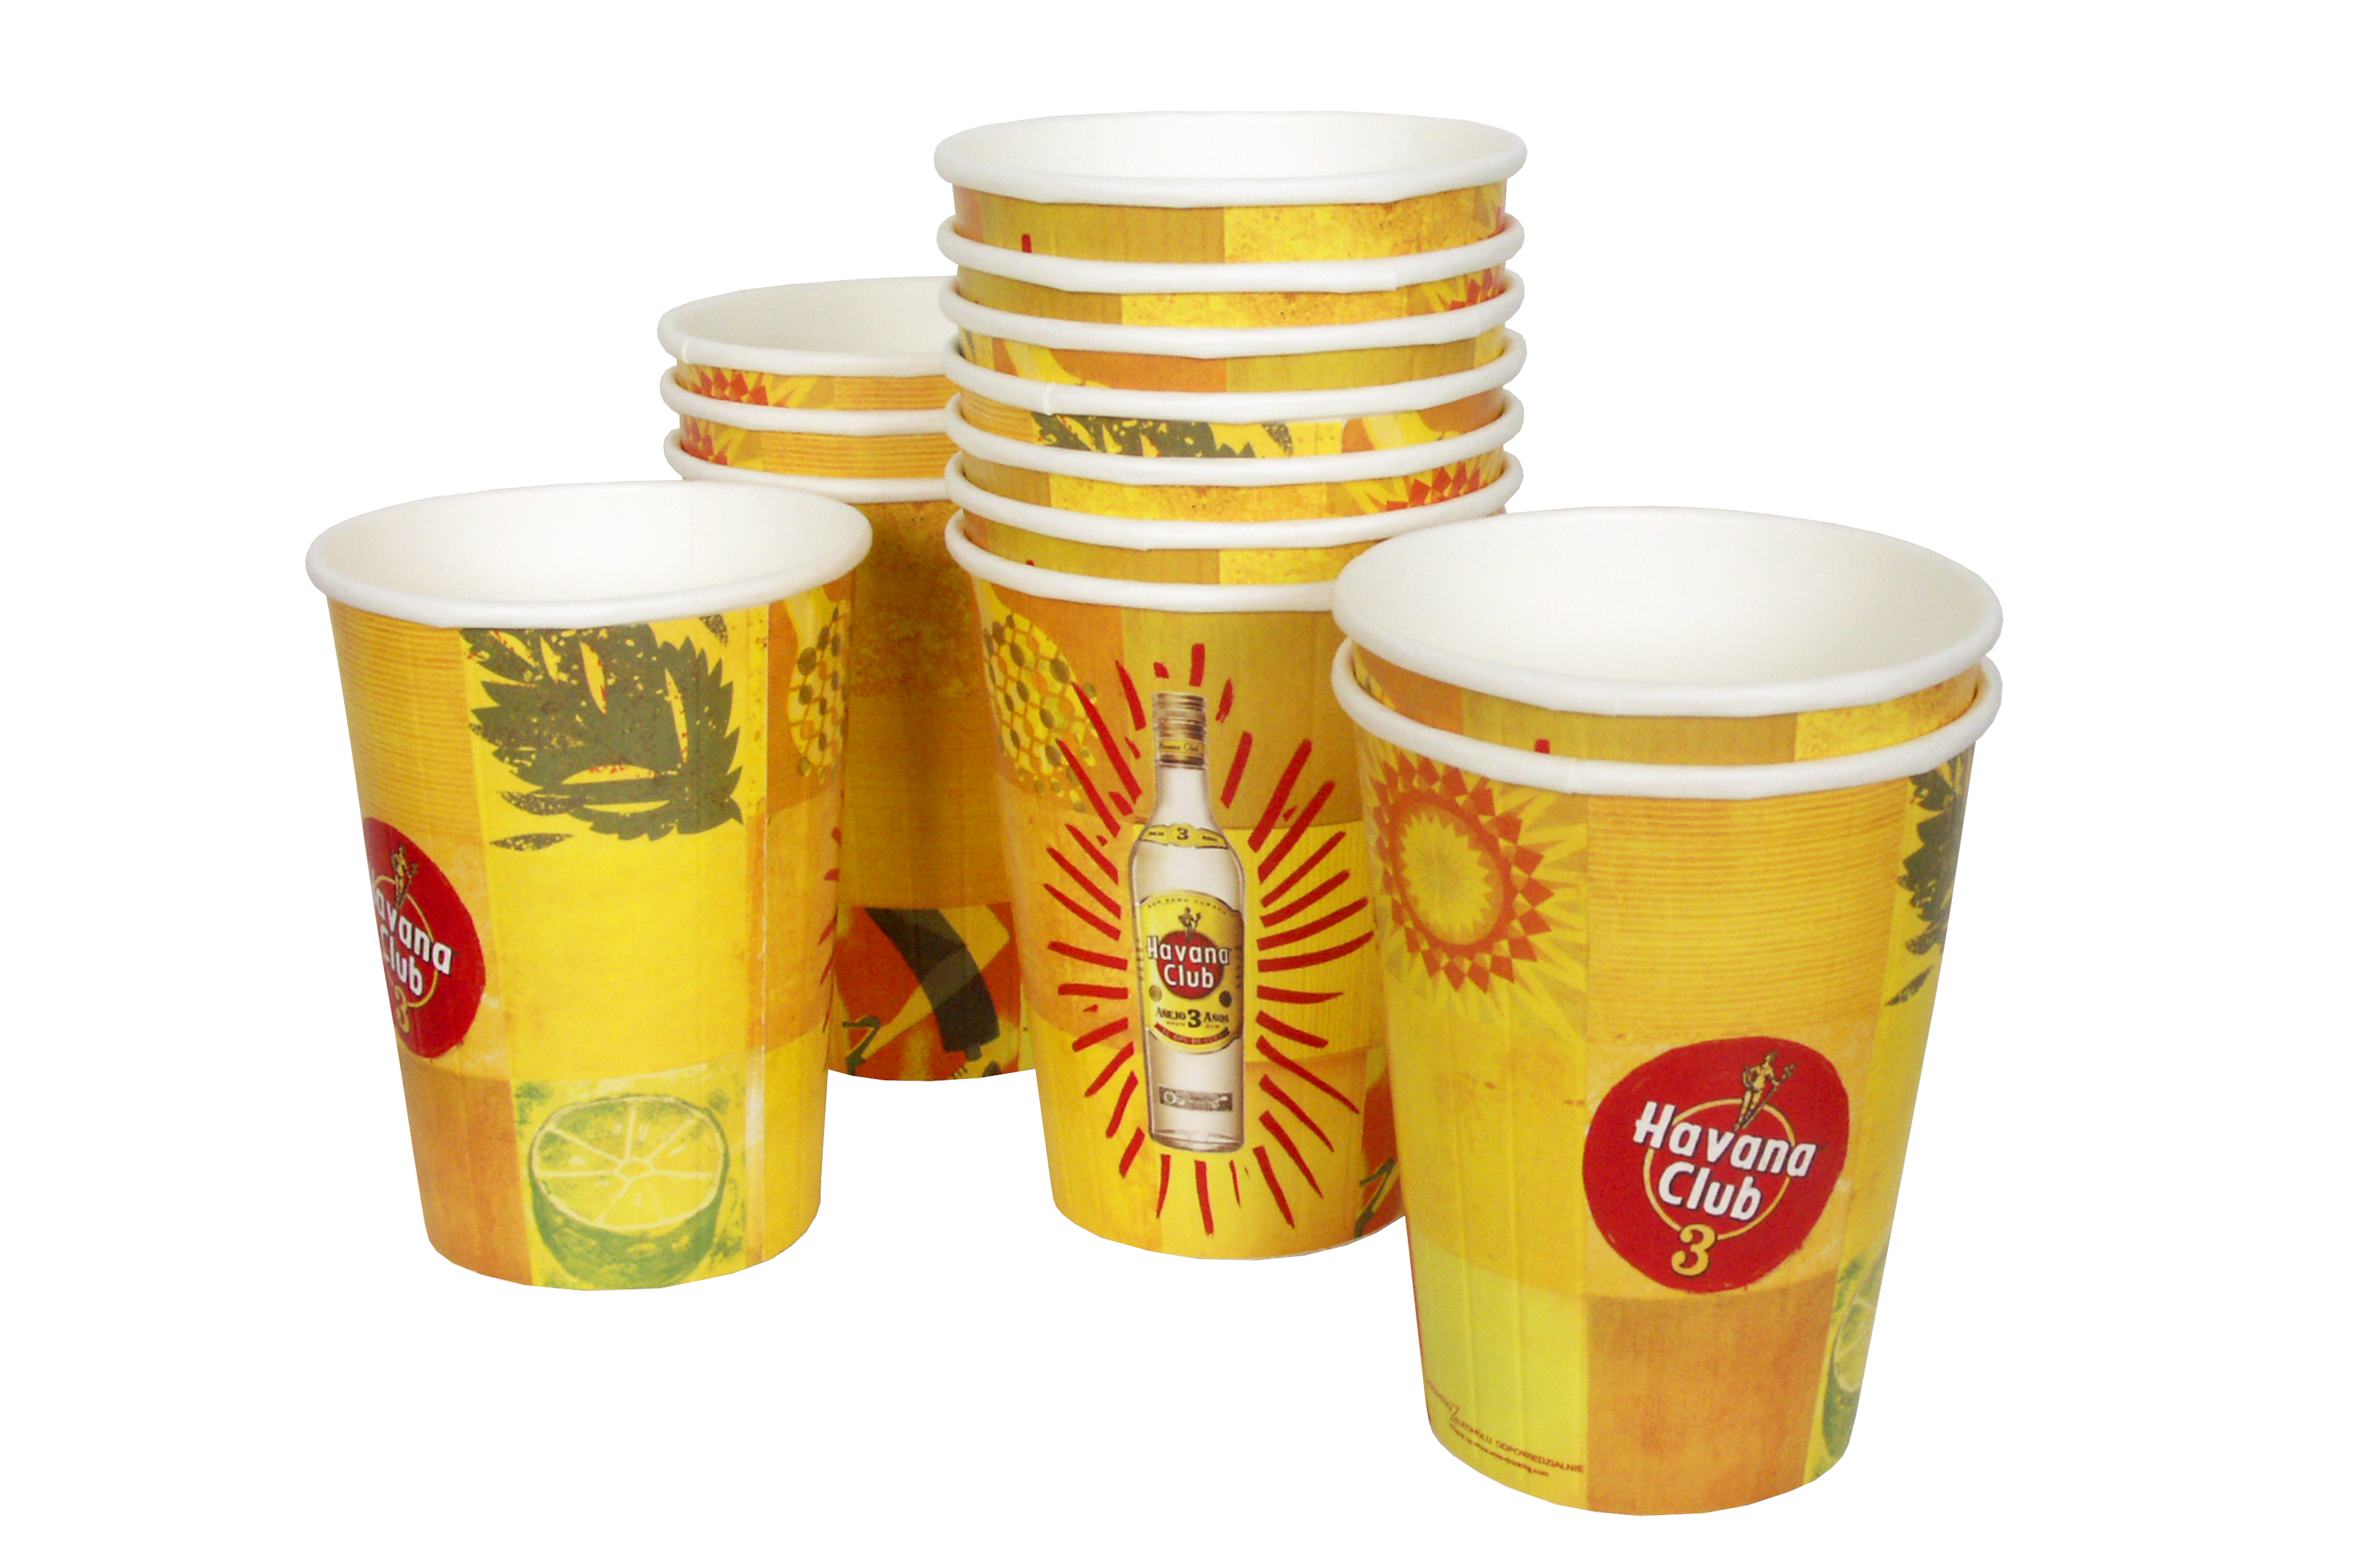 UniCup | UNICUP, a manufacturer of custom printed paper cups